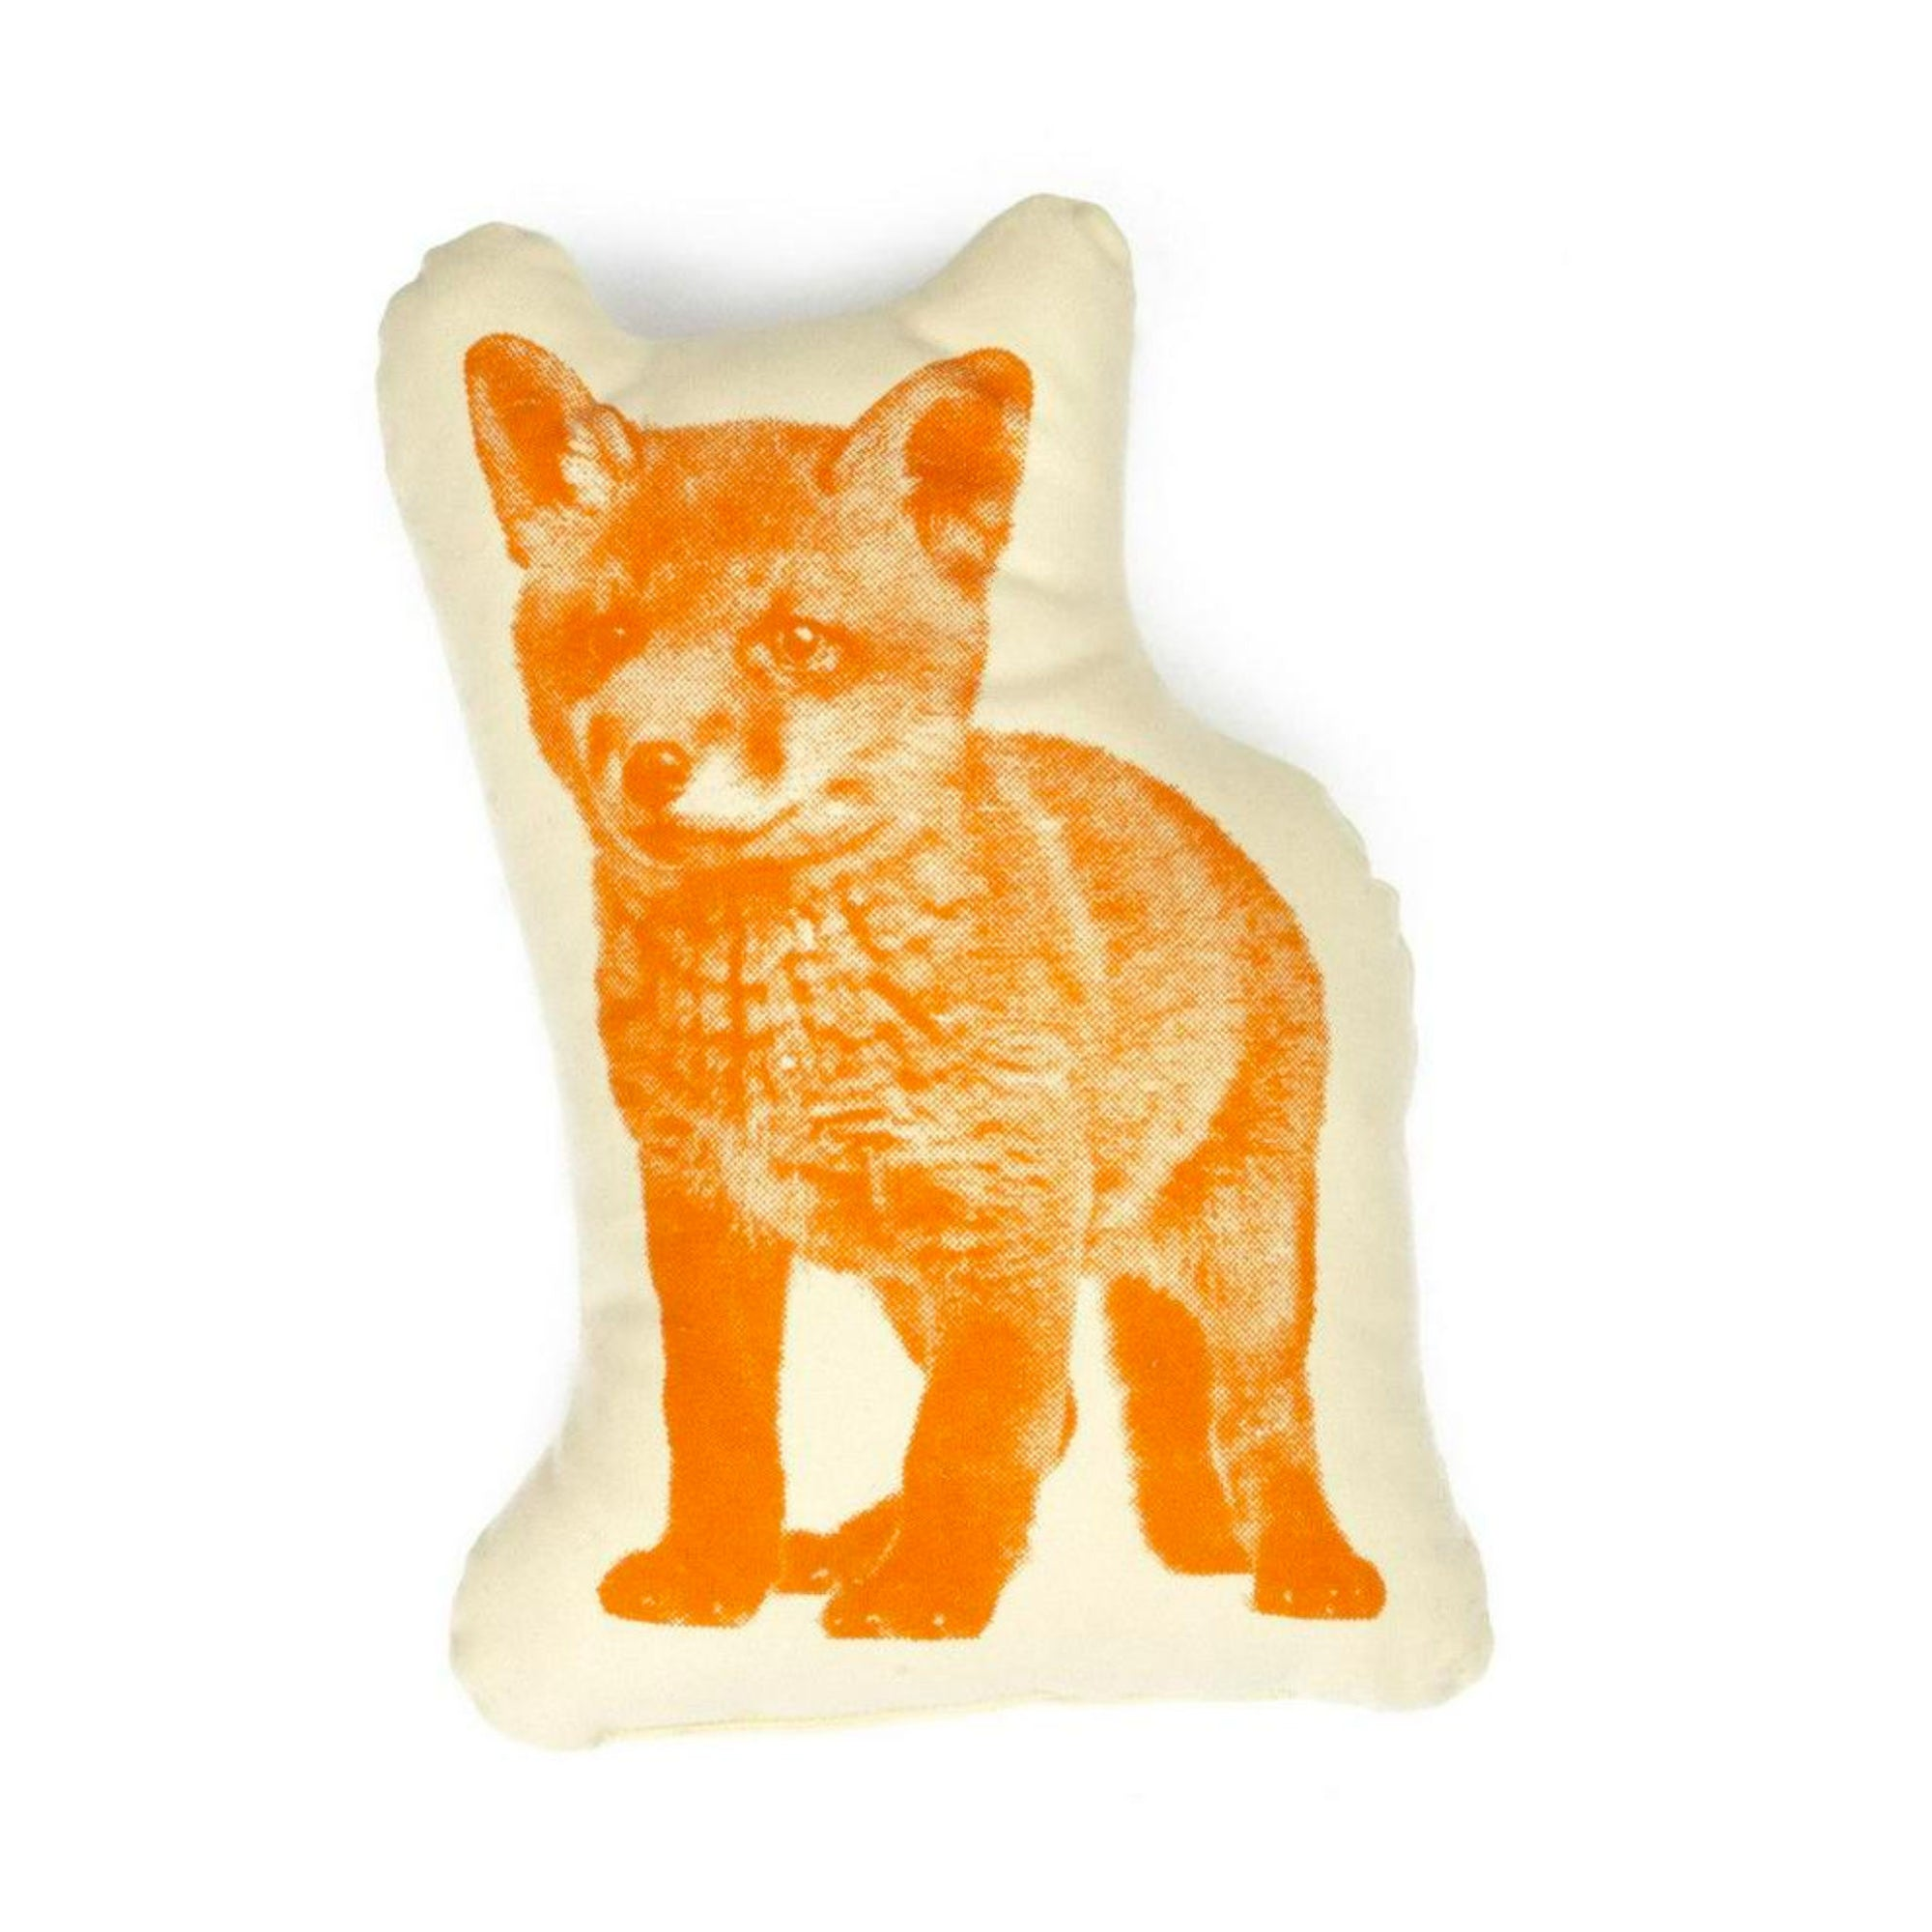 Areaware Pico Animal cushion, fox